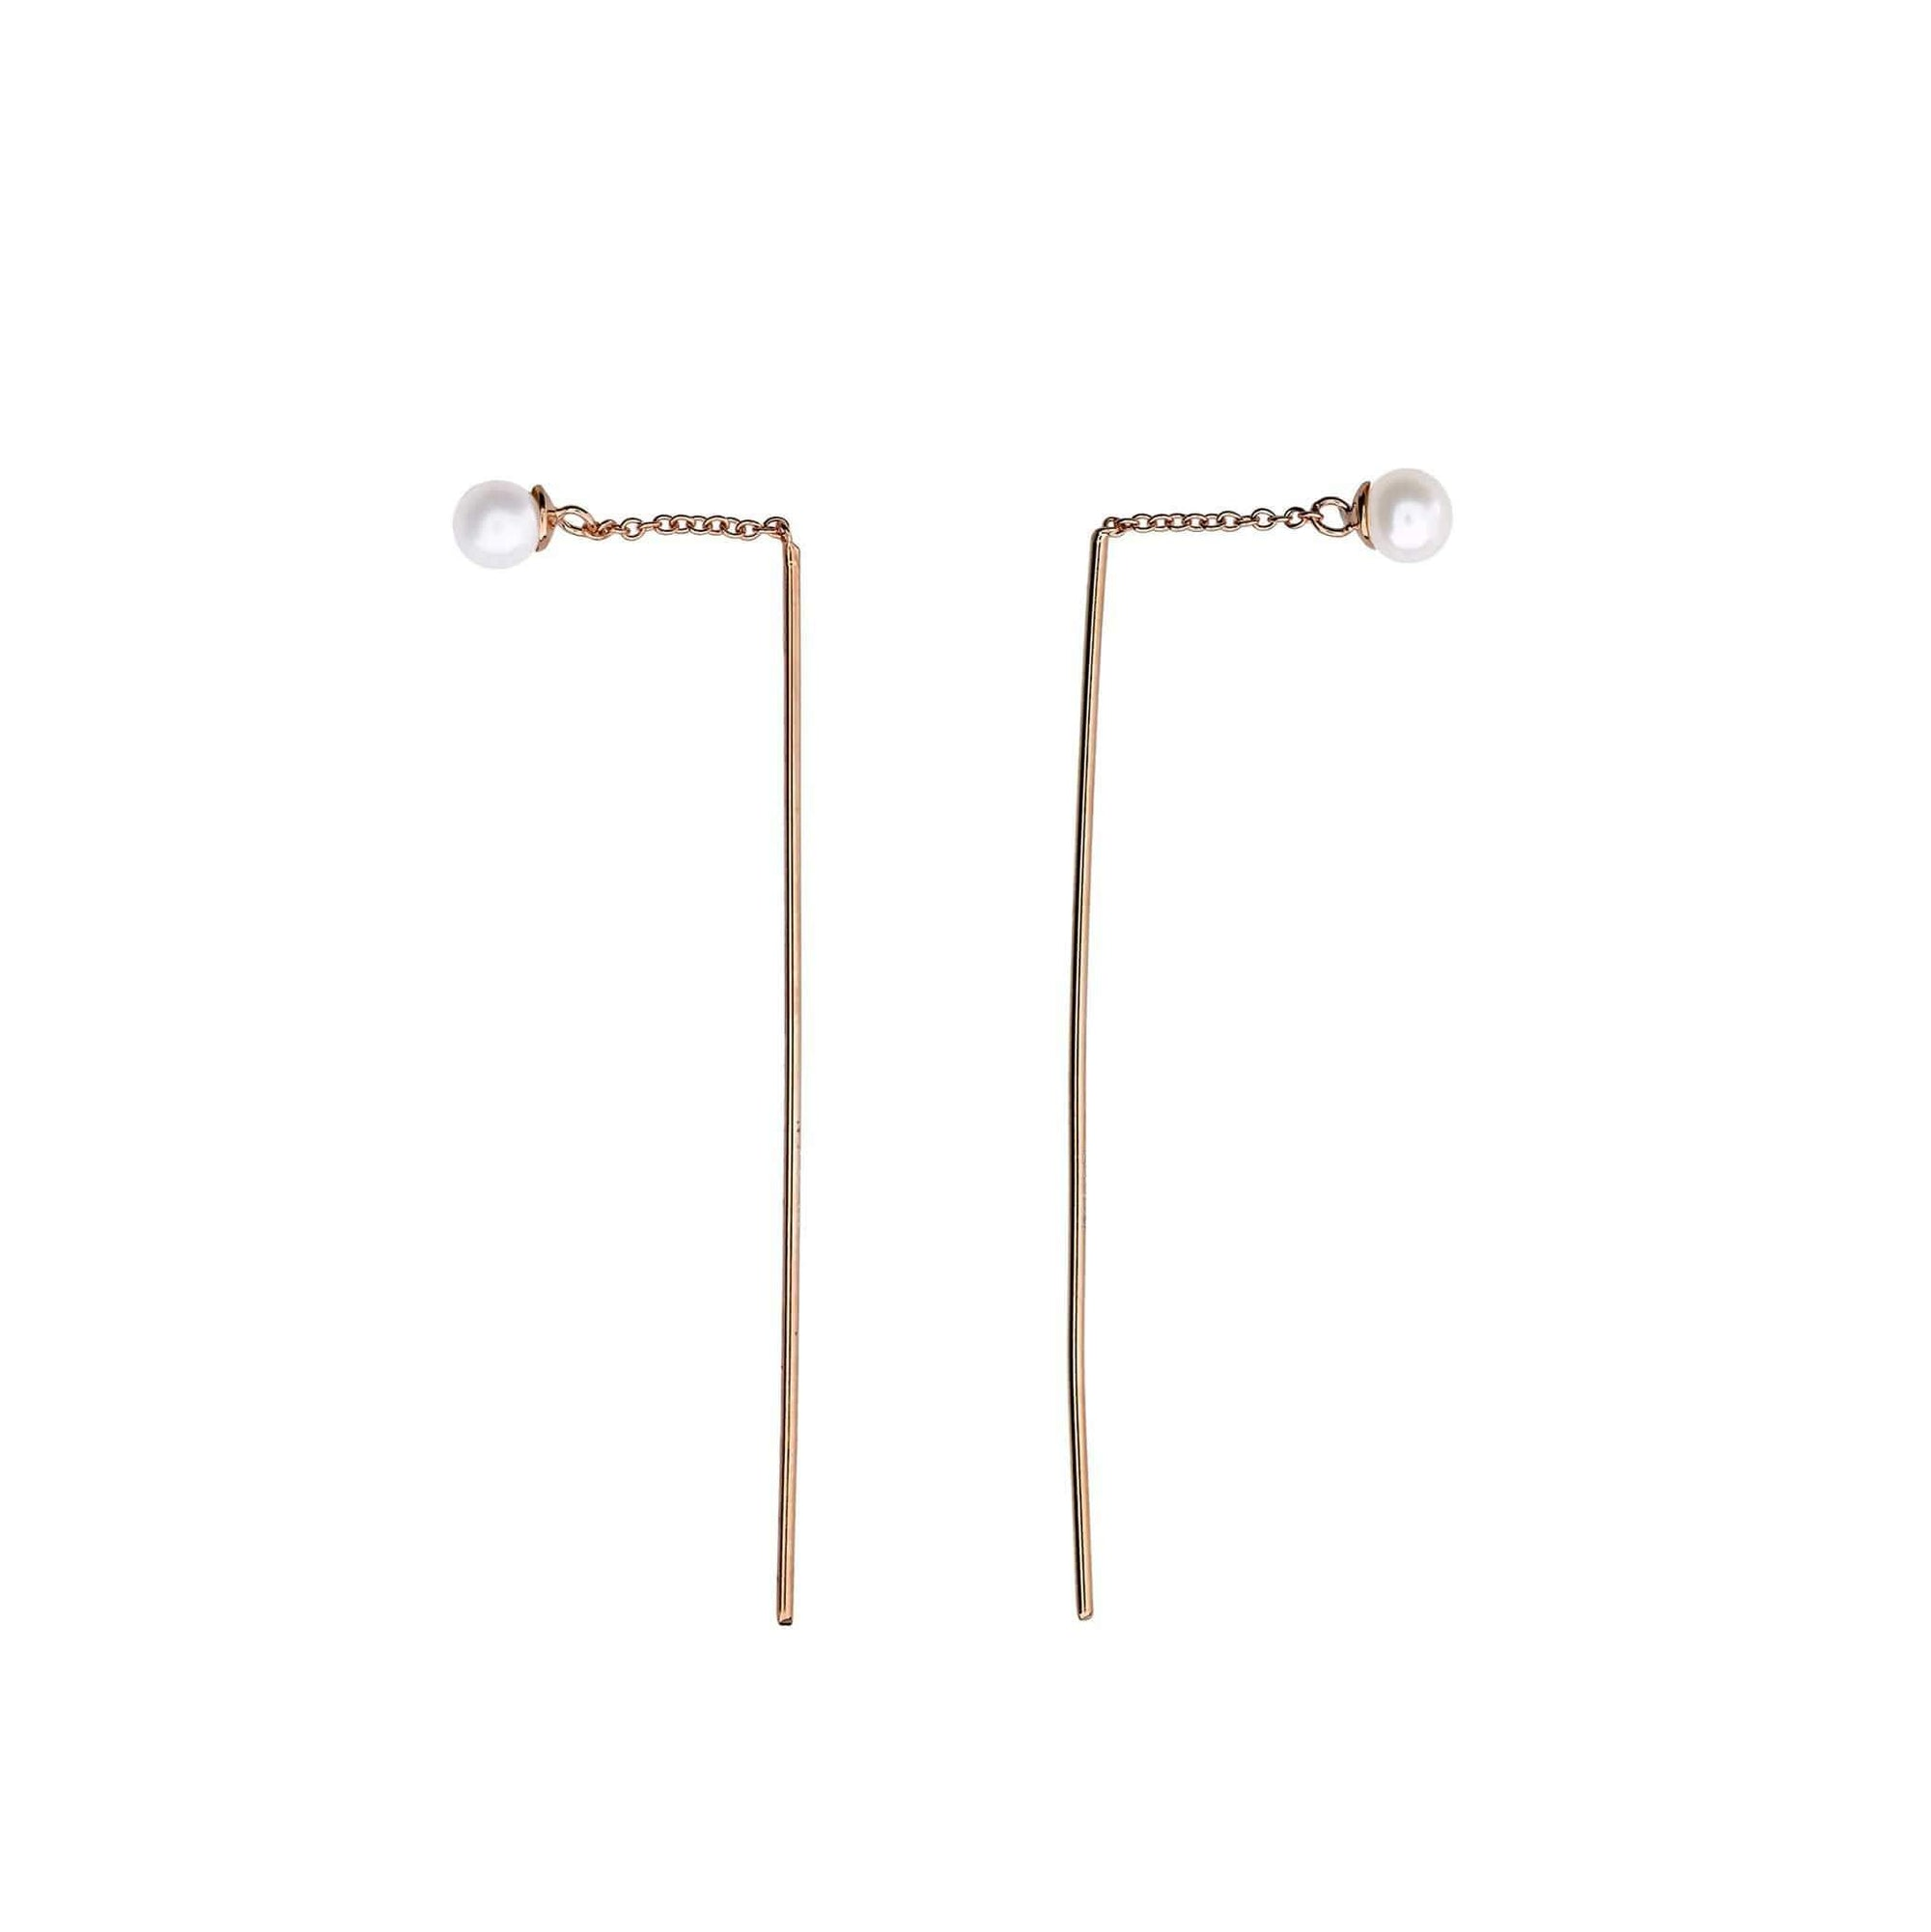 Silver Tribeca Pearl Stud & Bar Pull Through Earrings